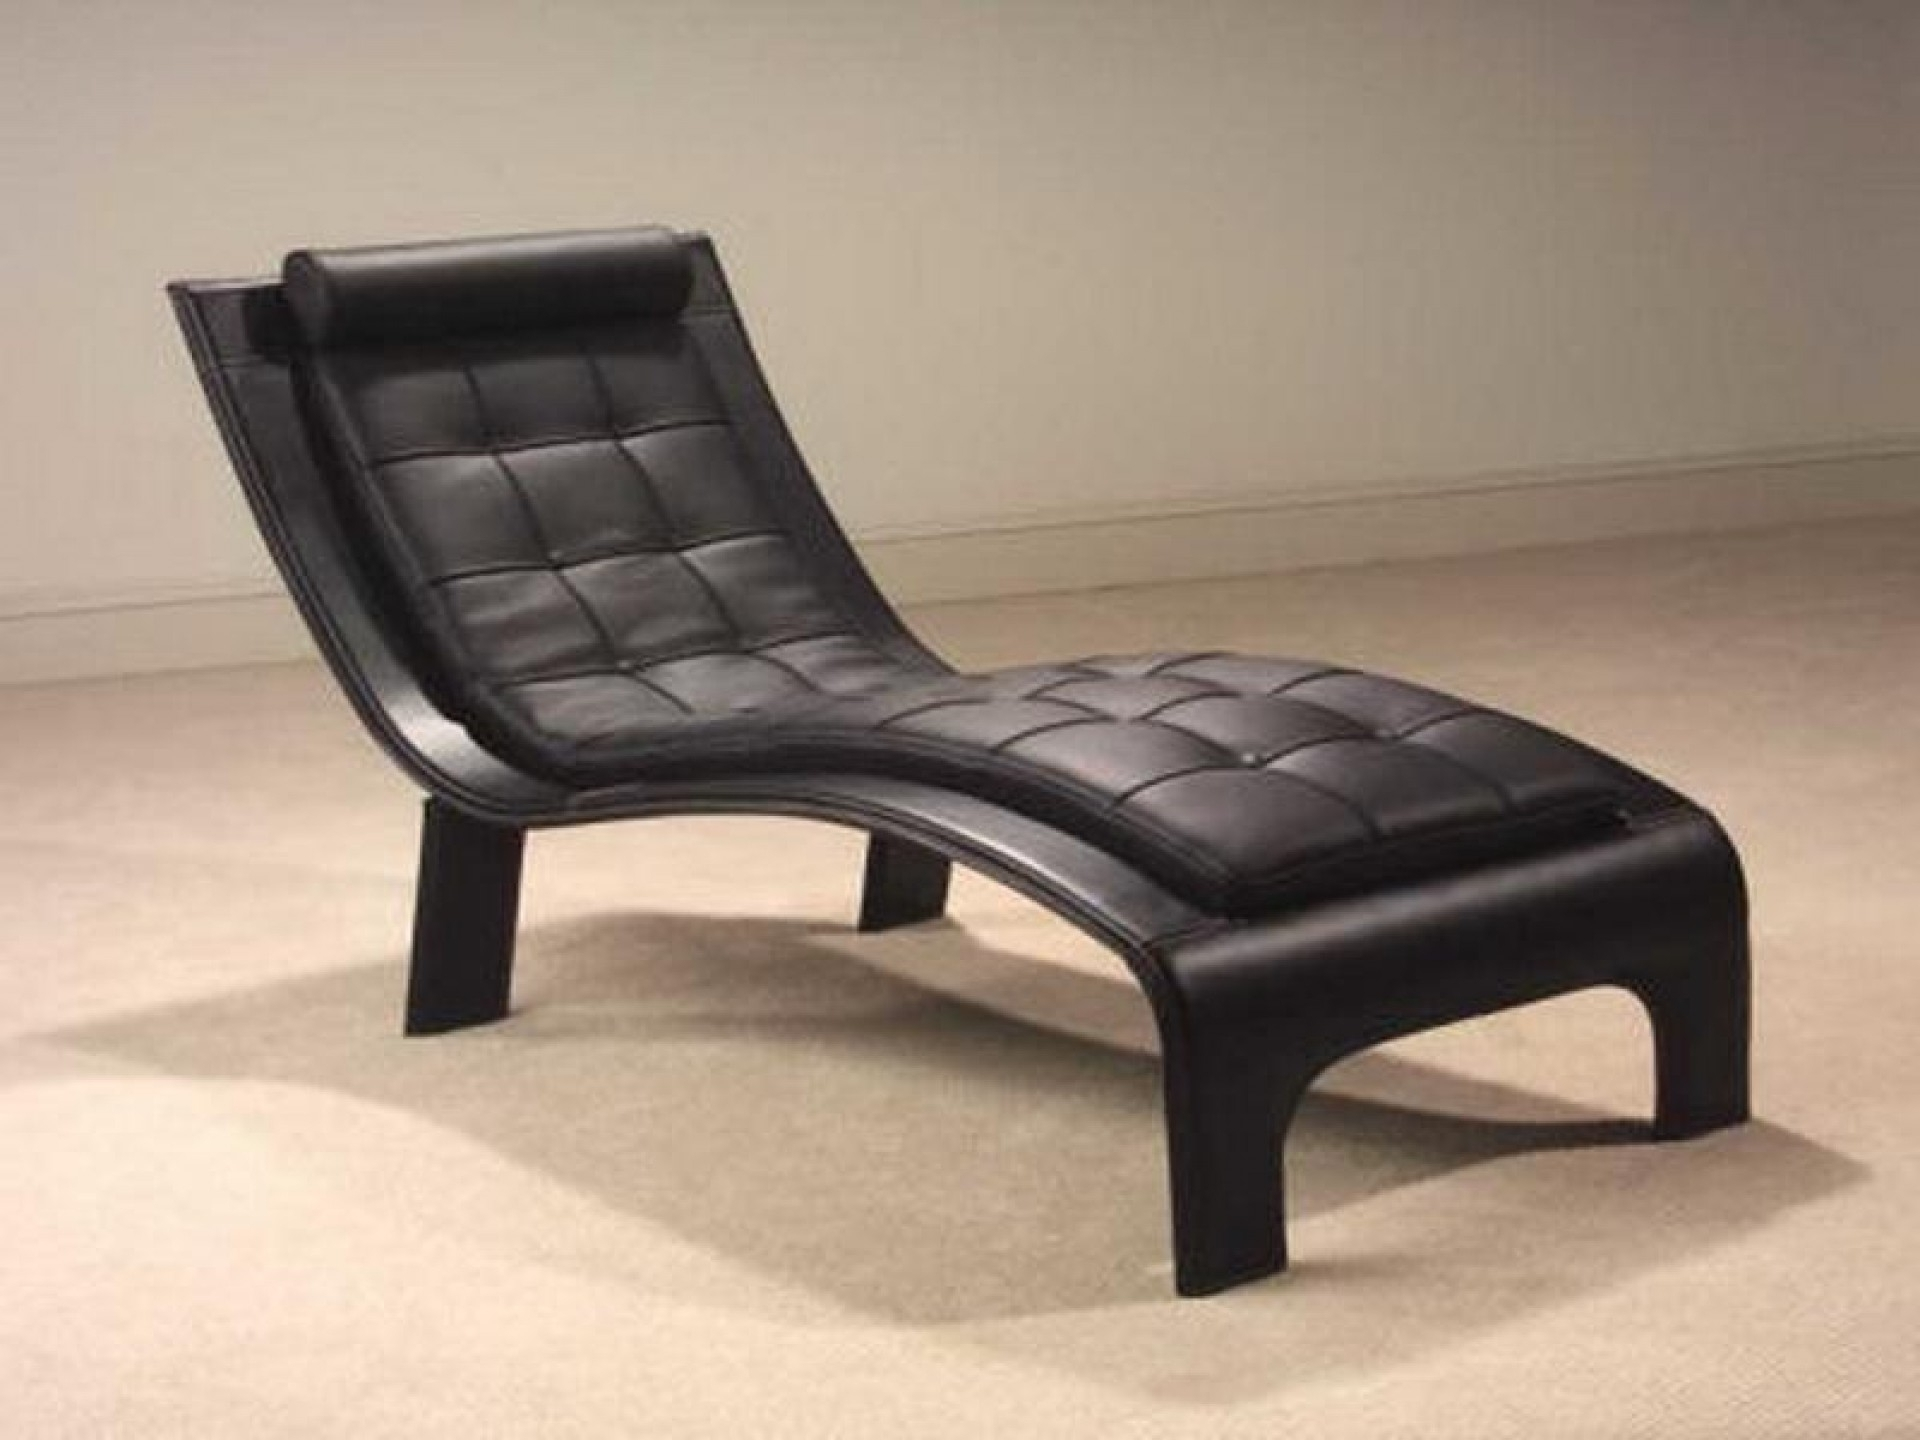 Black Leather Chaise Lounge Chairs • Lounge Chairs Ideas Within Most Popular Black Leather Chaise Lounge Chairs (View 2 of 15)